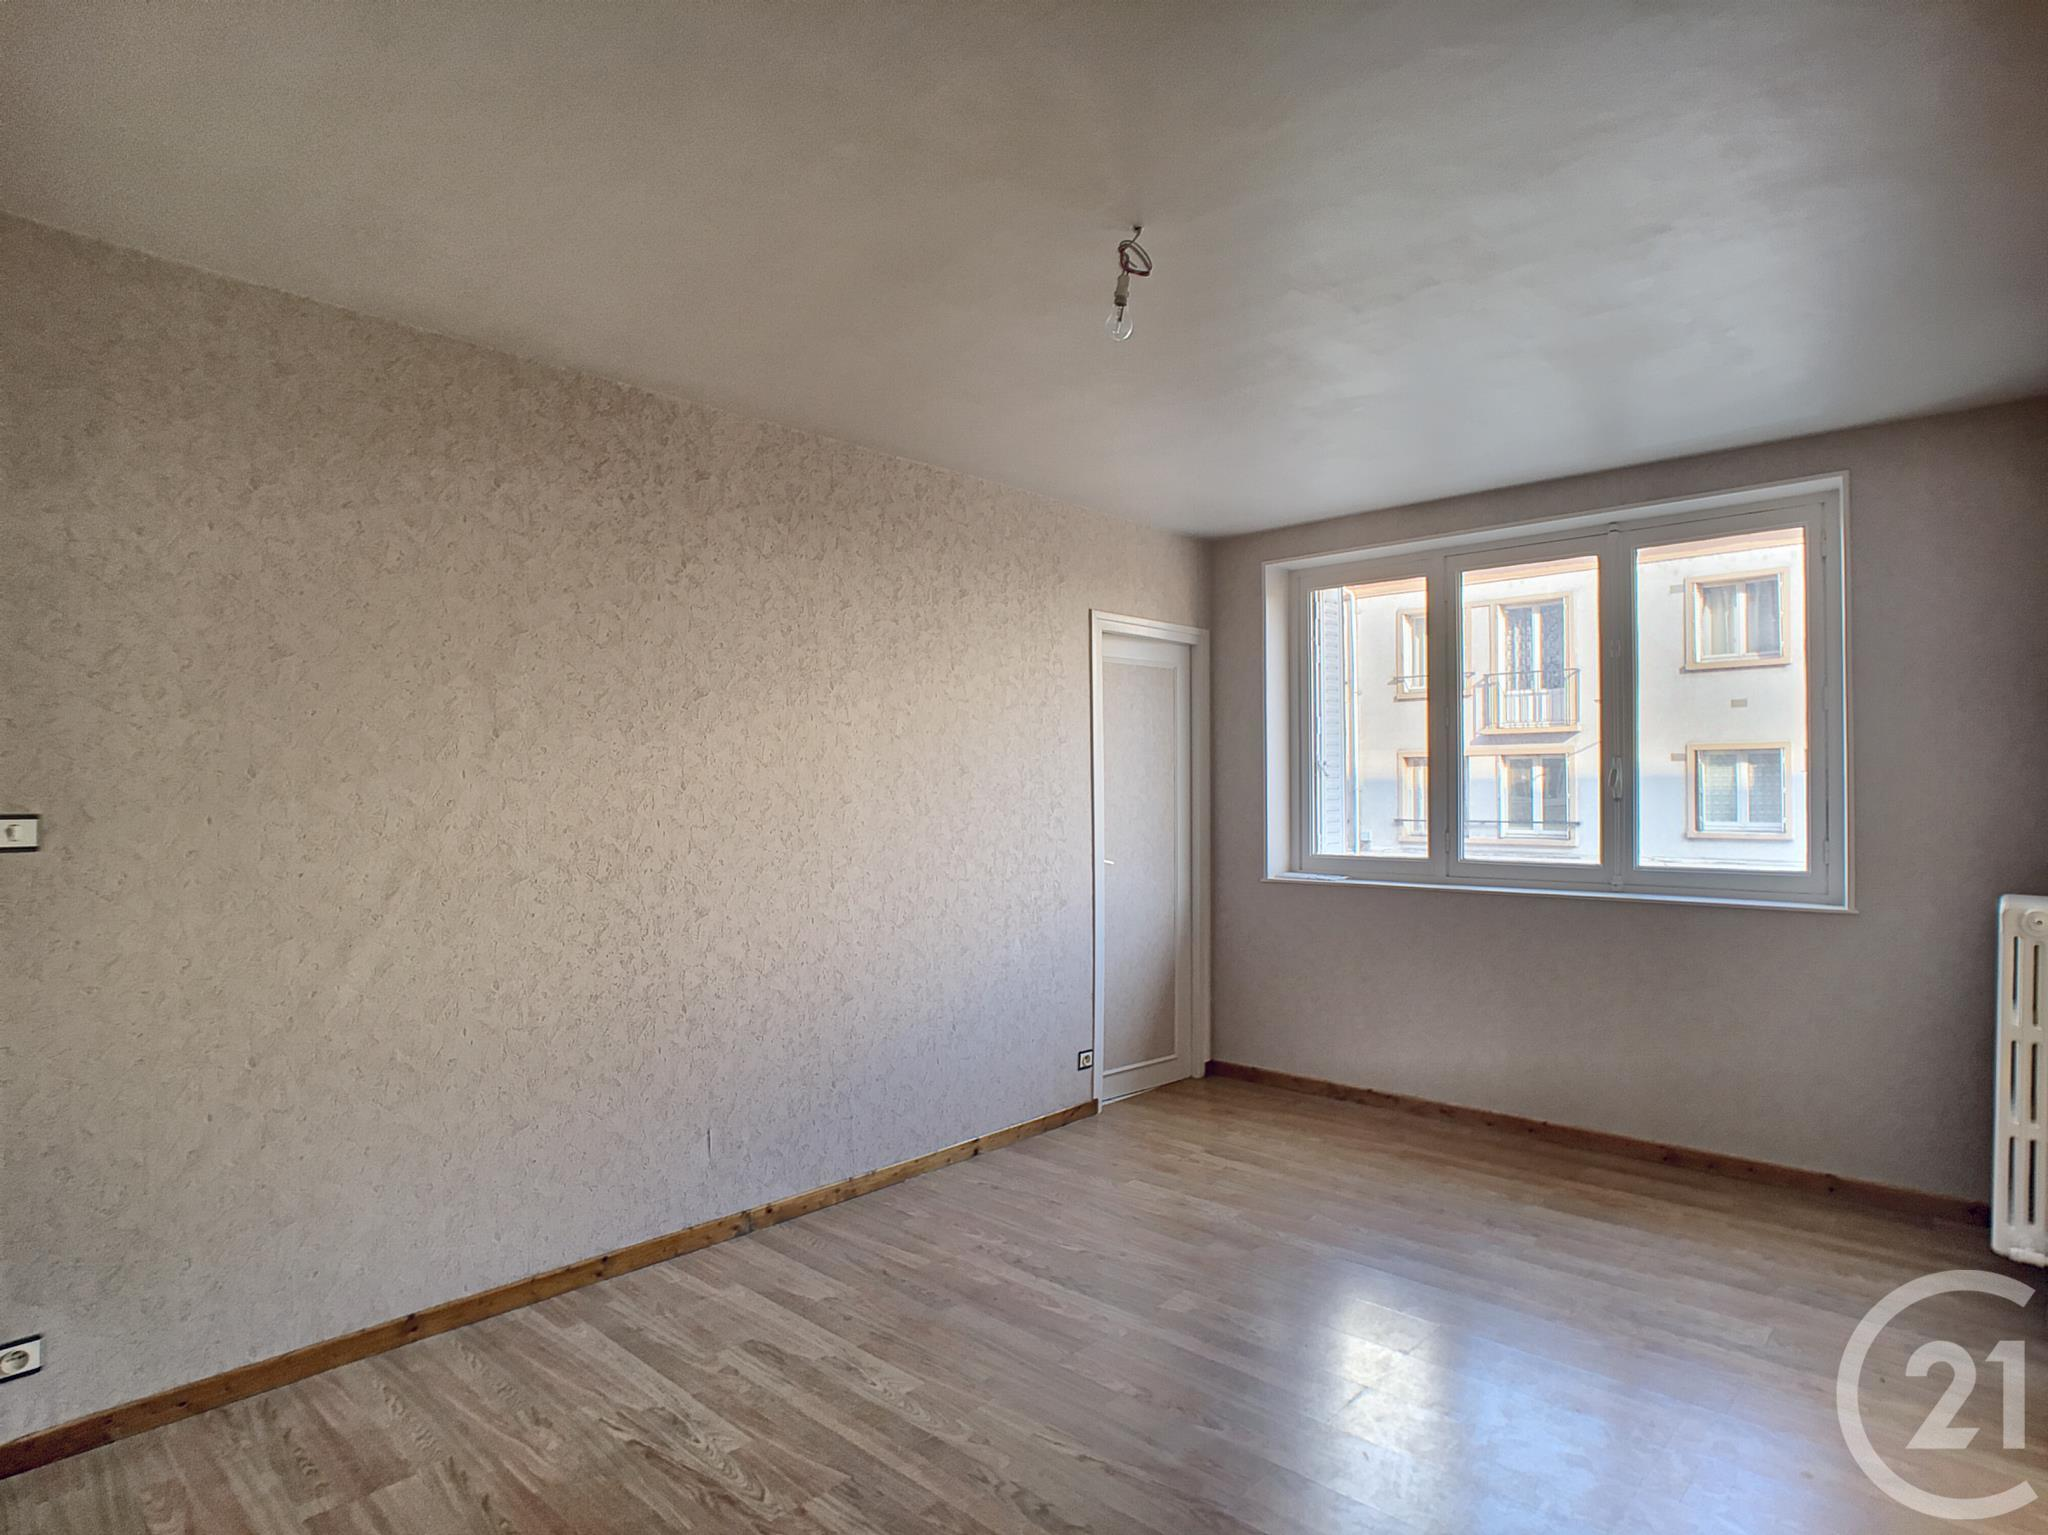 Appartement f3 à vendre - 3 pièces - 54 m2 - TROYES - 10 - CHAMPAGNE-ARDENNE